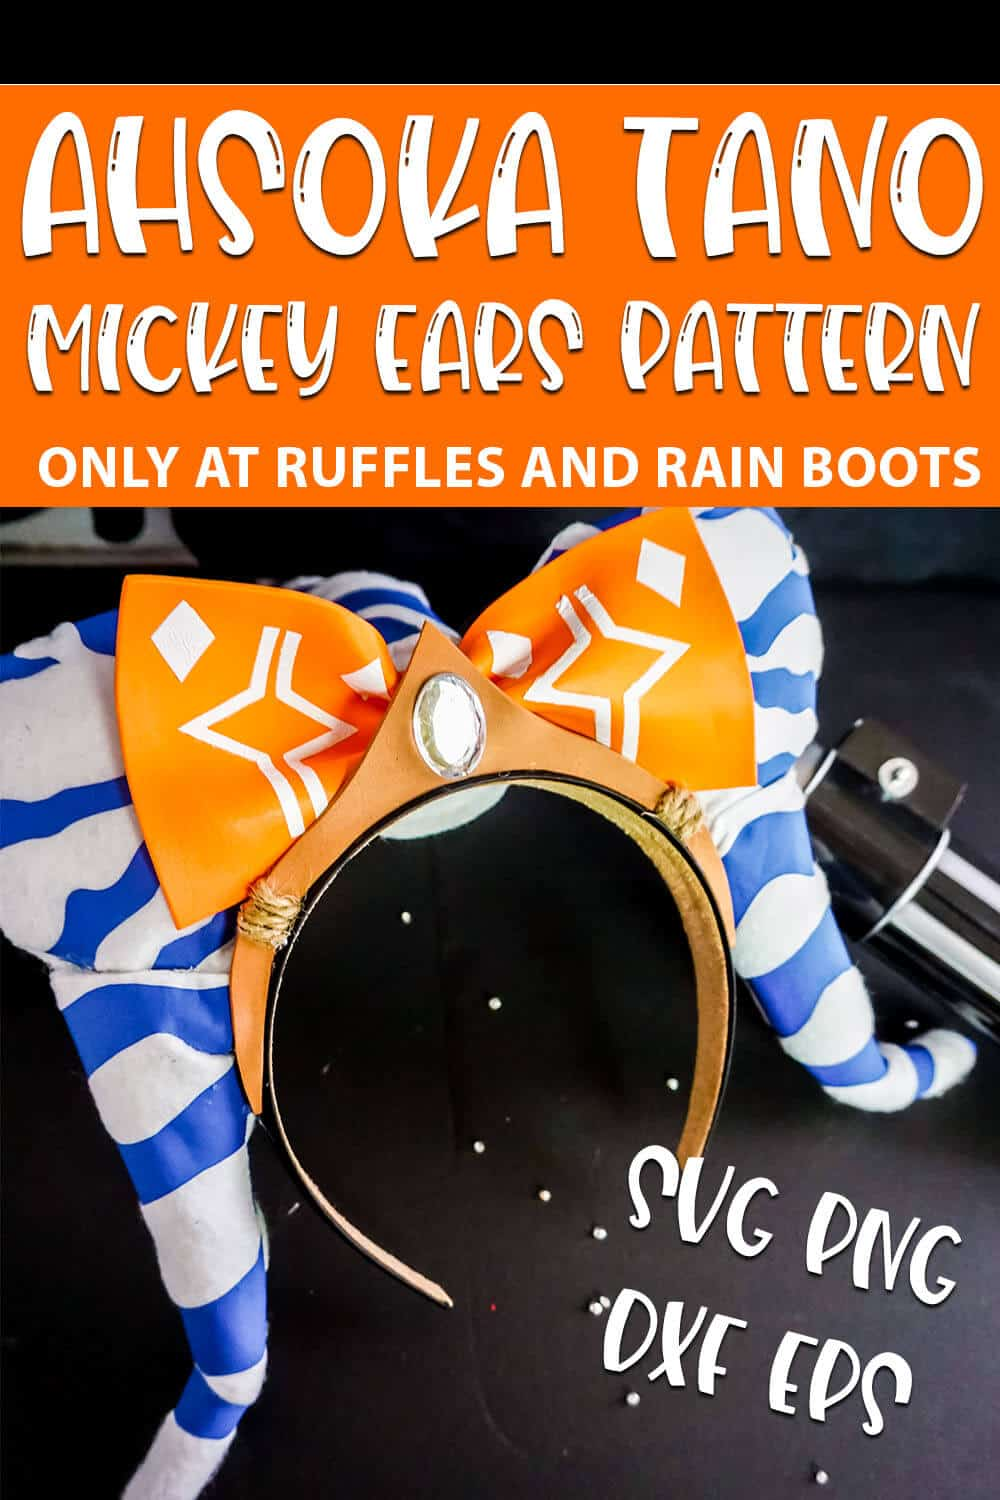 Ahsoka Mickey Ears on a black table with text which reads ahsoka tano mickey ears pattern svg png dxf eps